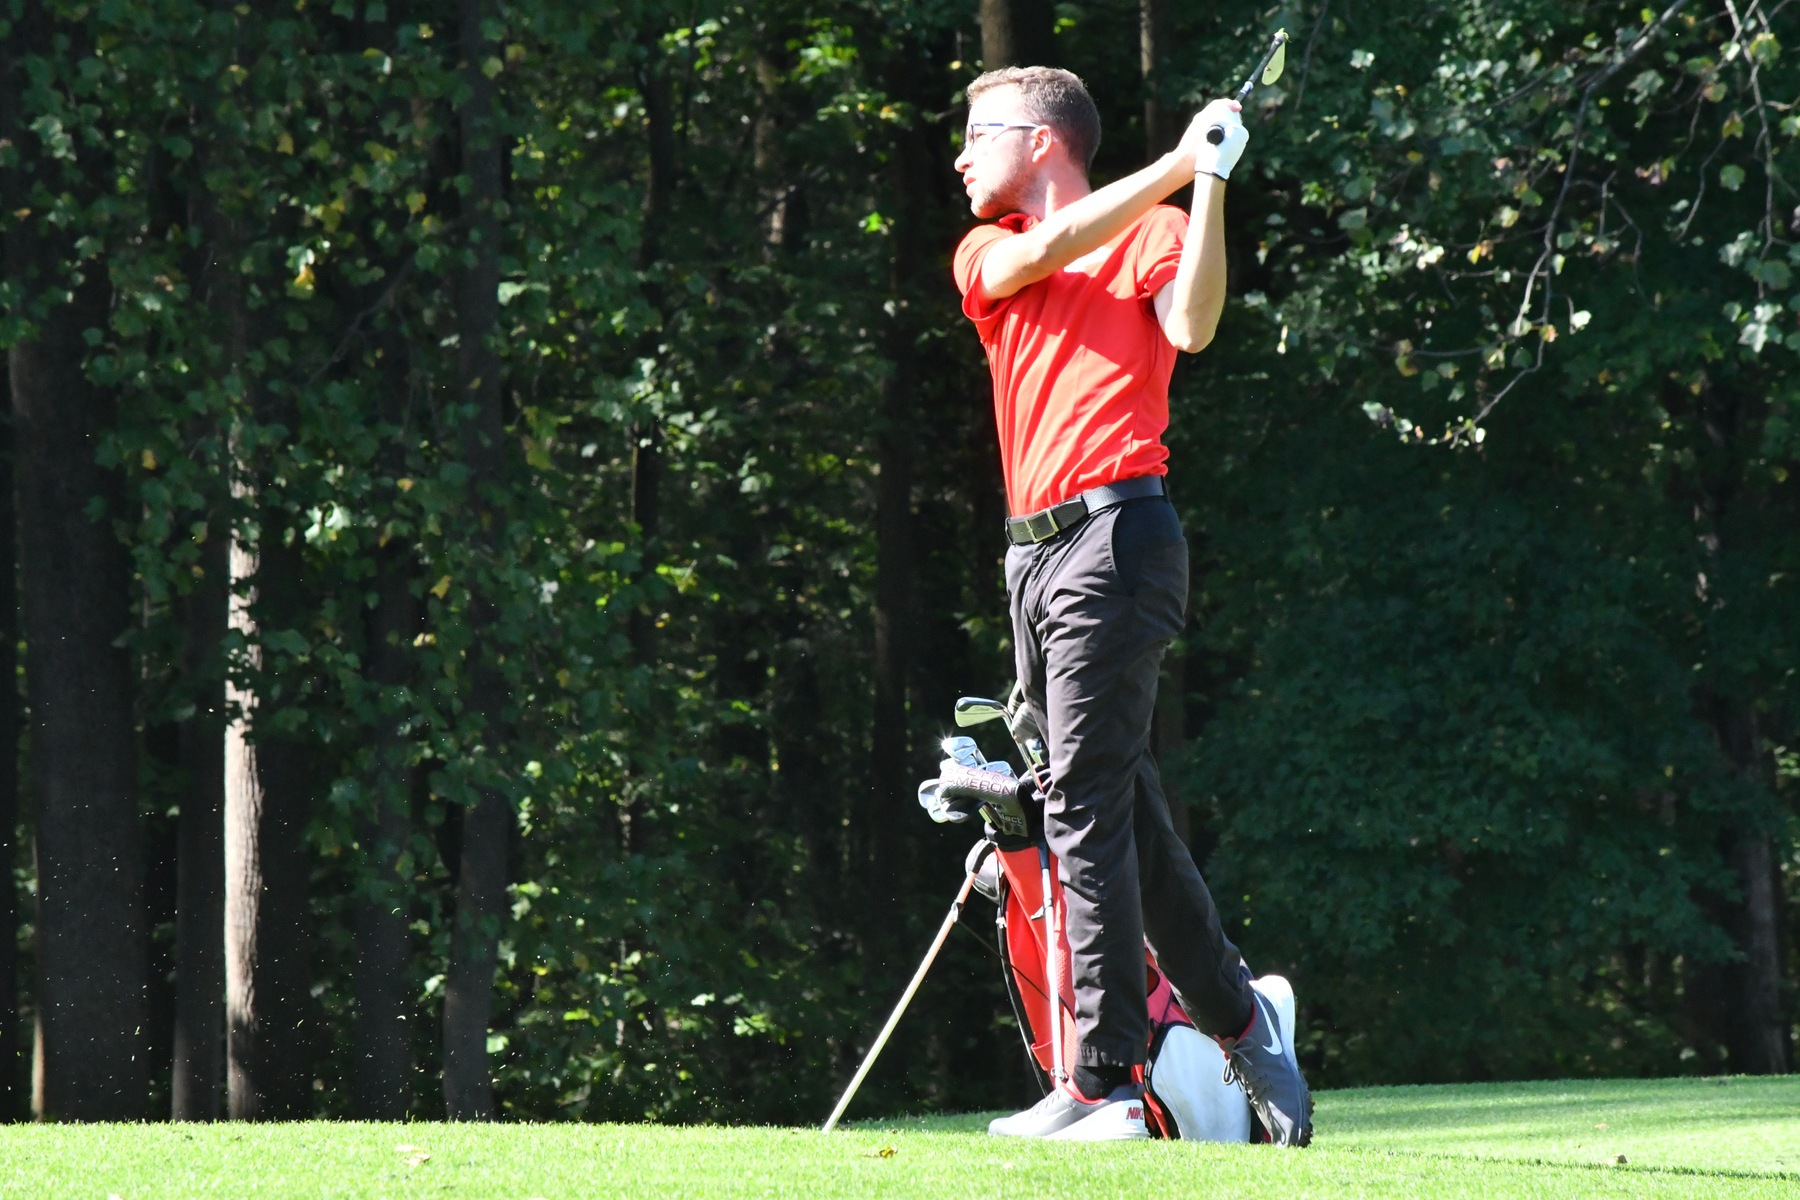 MEN'S GOLF IN TIE FOR FOURTH PLACE AFTER ROUND ONE OF NCAA D2 ATLANTIC/EAST SUPER REGIONAL